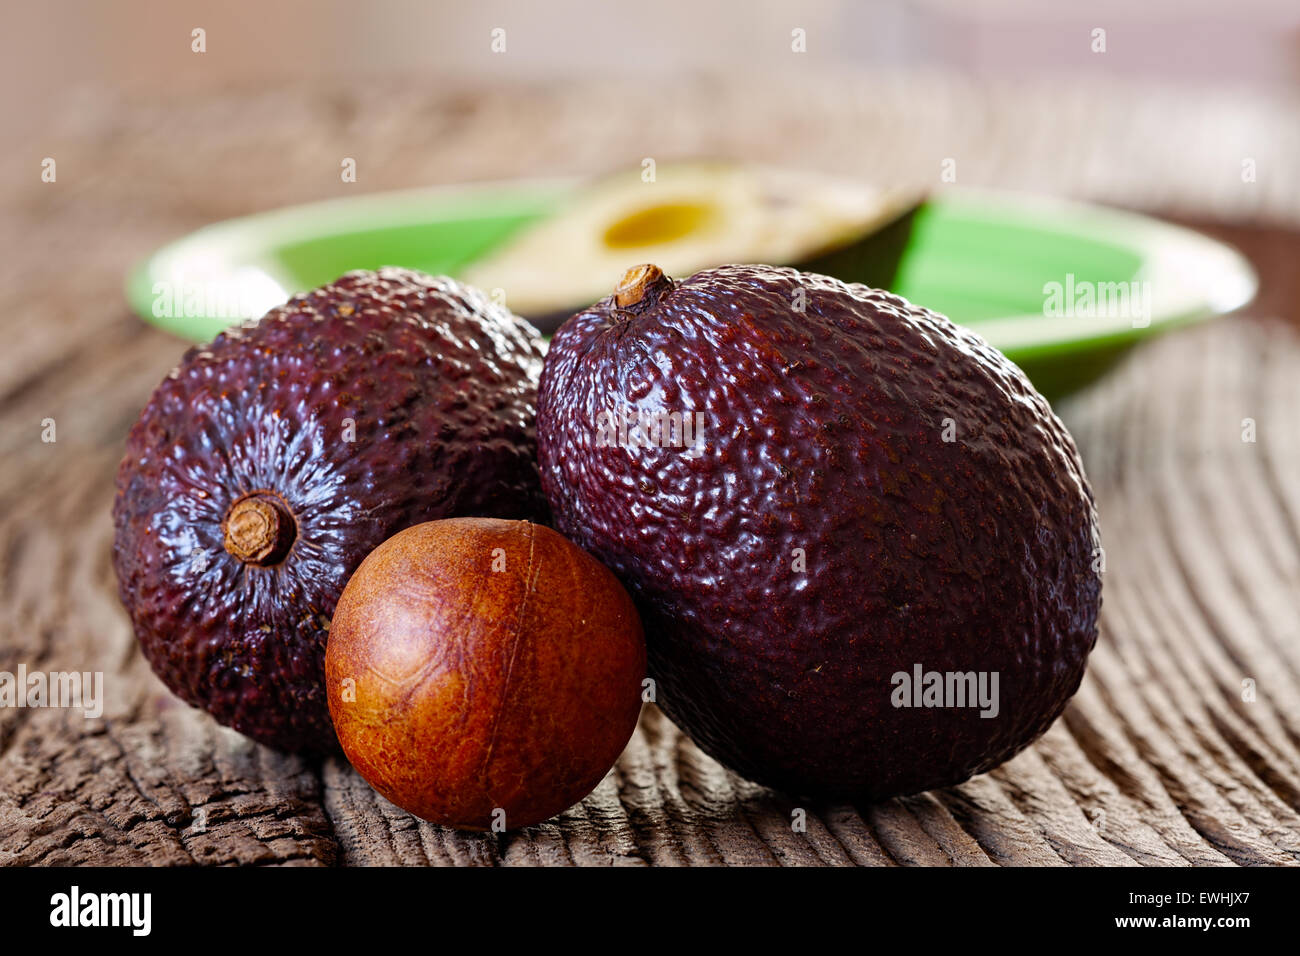 Two ripe avocados and avocado core on an old rustic wooden plank - Stock Image